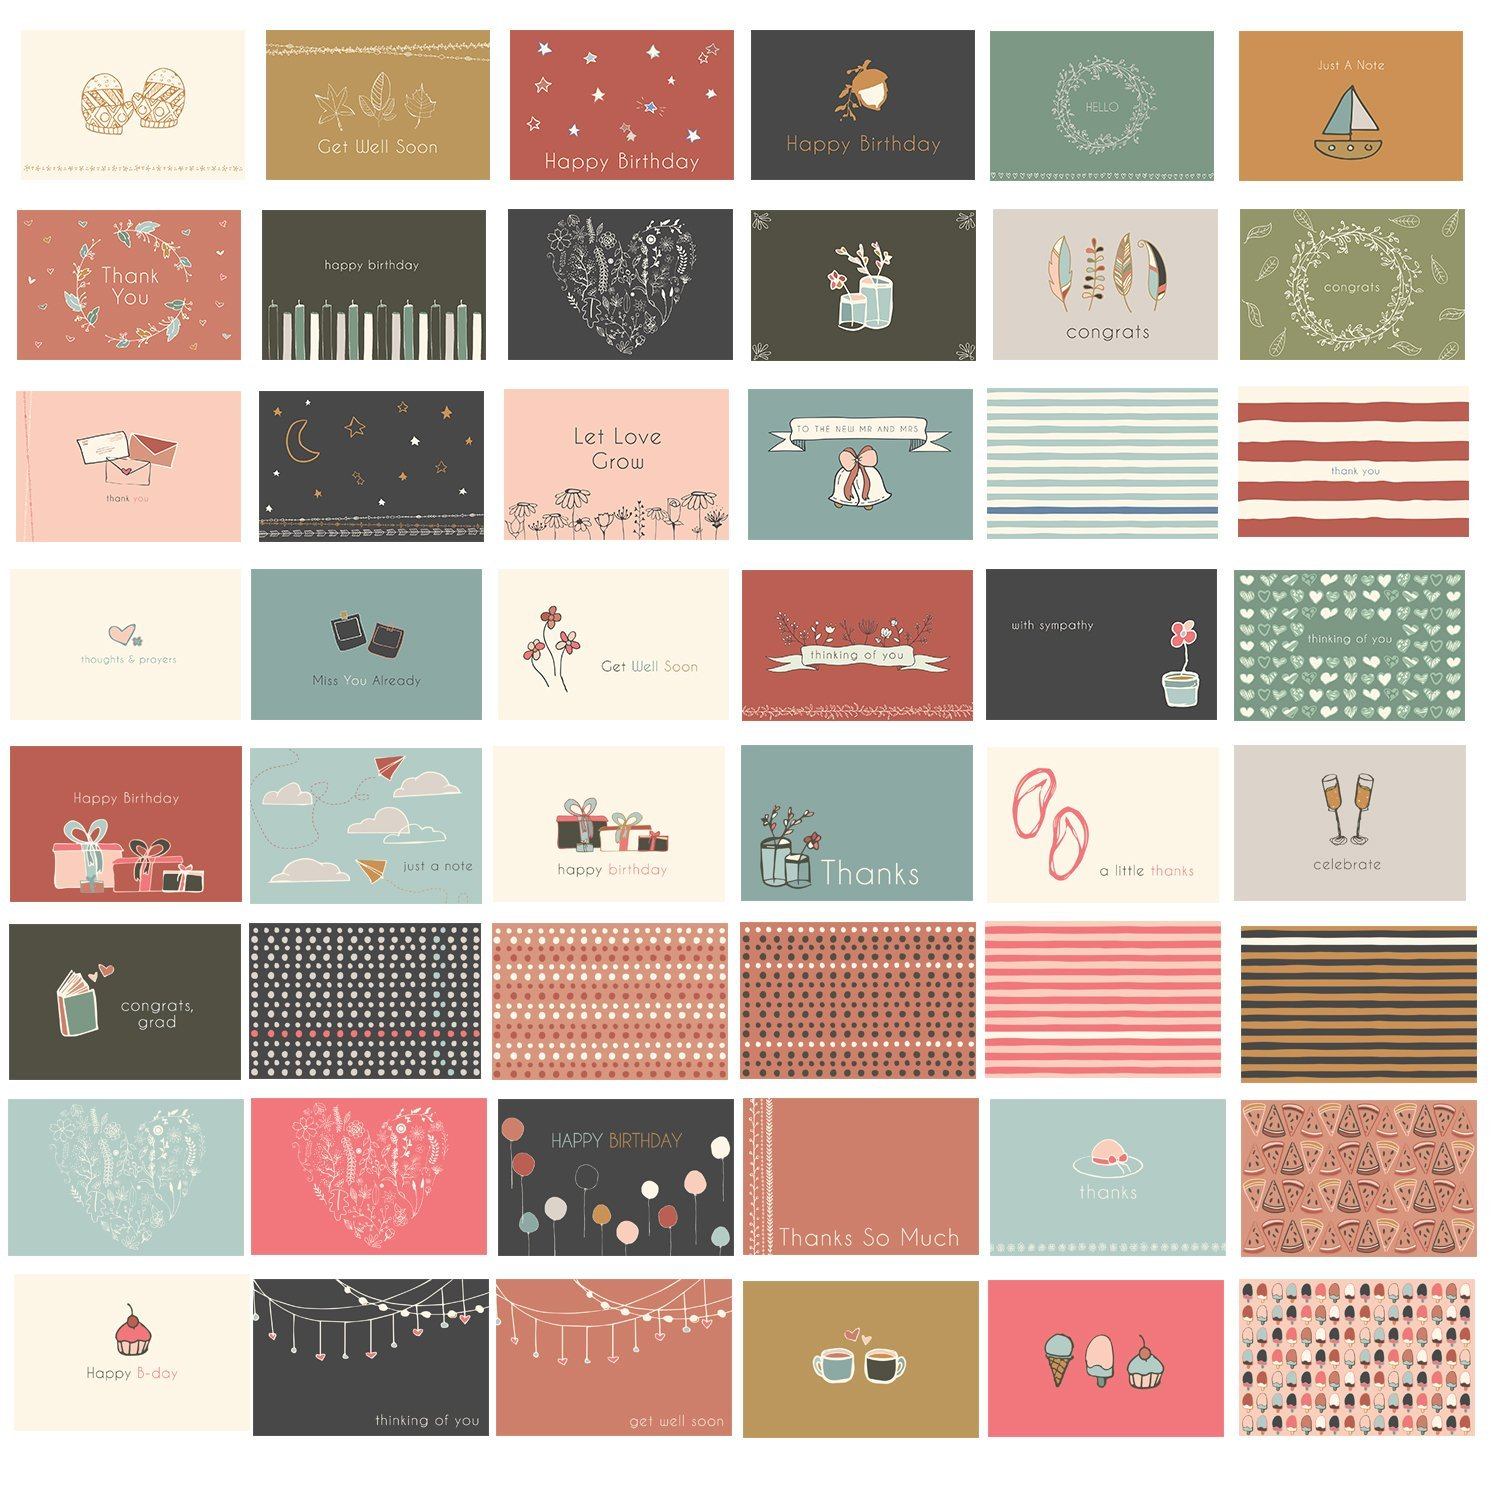 Cheap Blank Greeting Cards Find Blank Greeting Cards Deals On Line